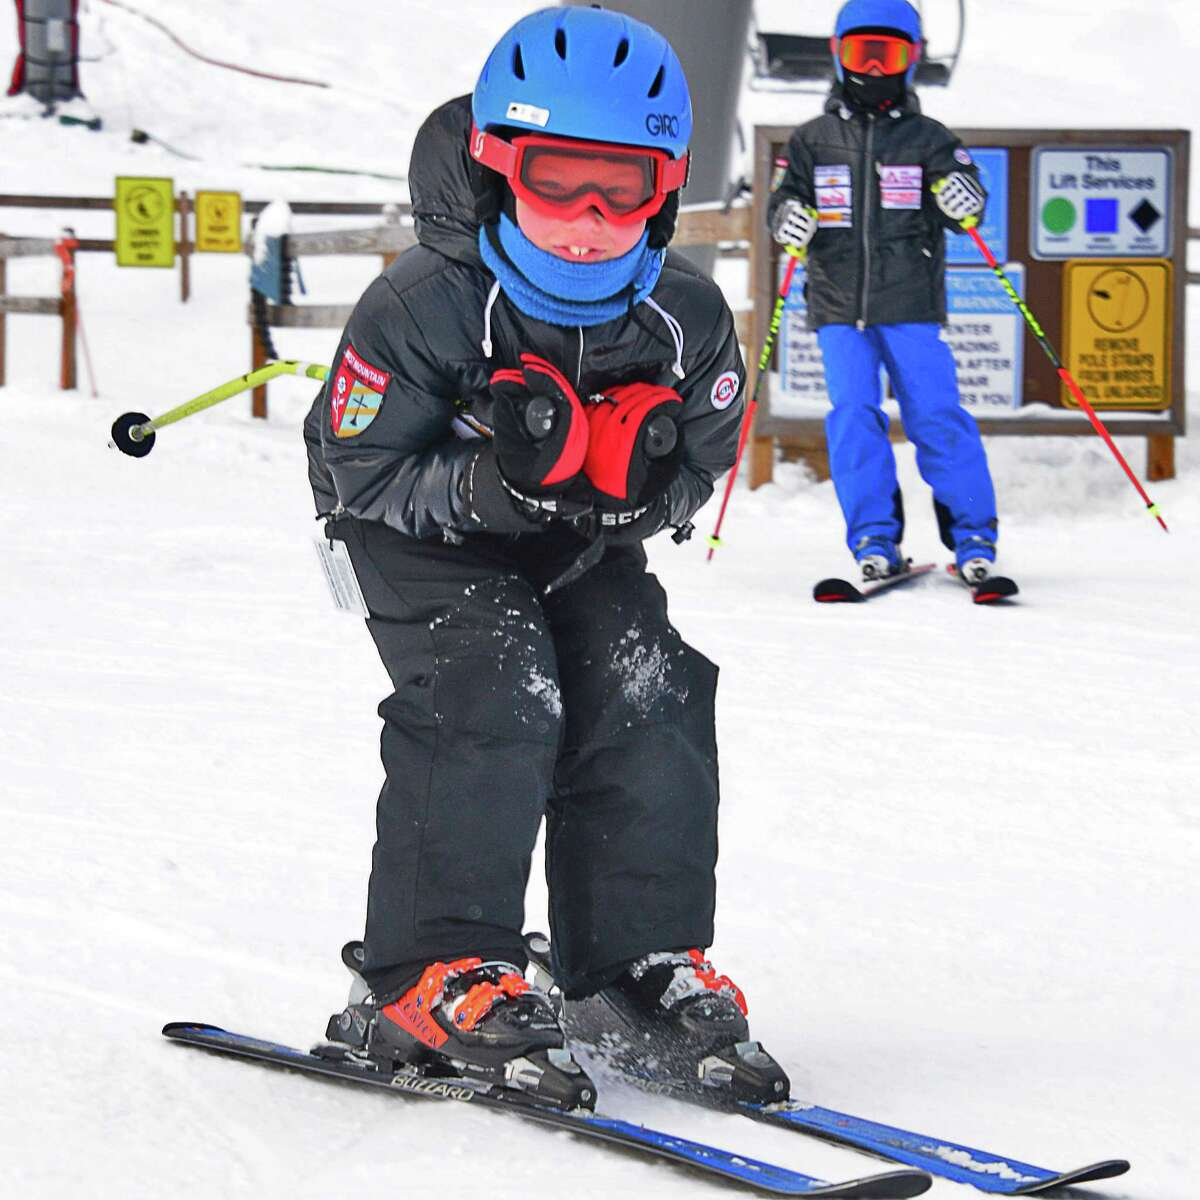 Eight-year-old Rory Byrne of Saratoga Springs finishes a run as West Mountain Ski Area opens for the season Saturday Dec. 16, 2017 in Queensbury, NY. (John Carl D'Annibale / Times Union)